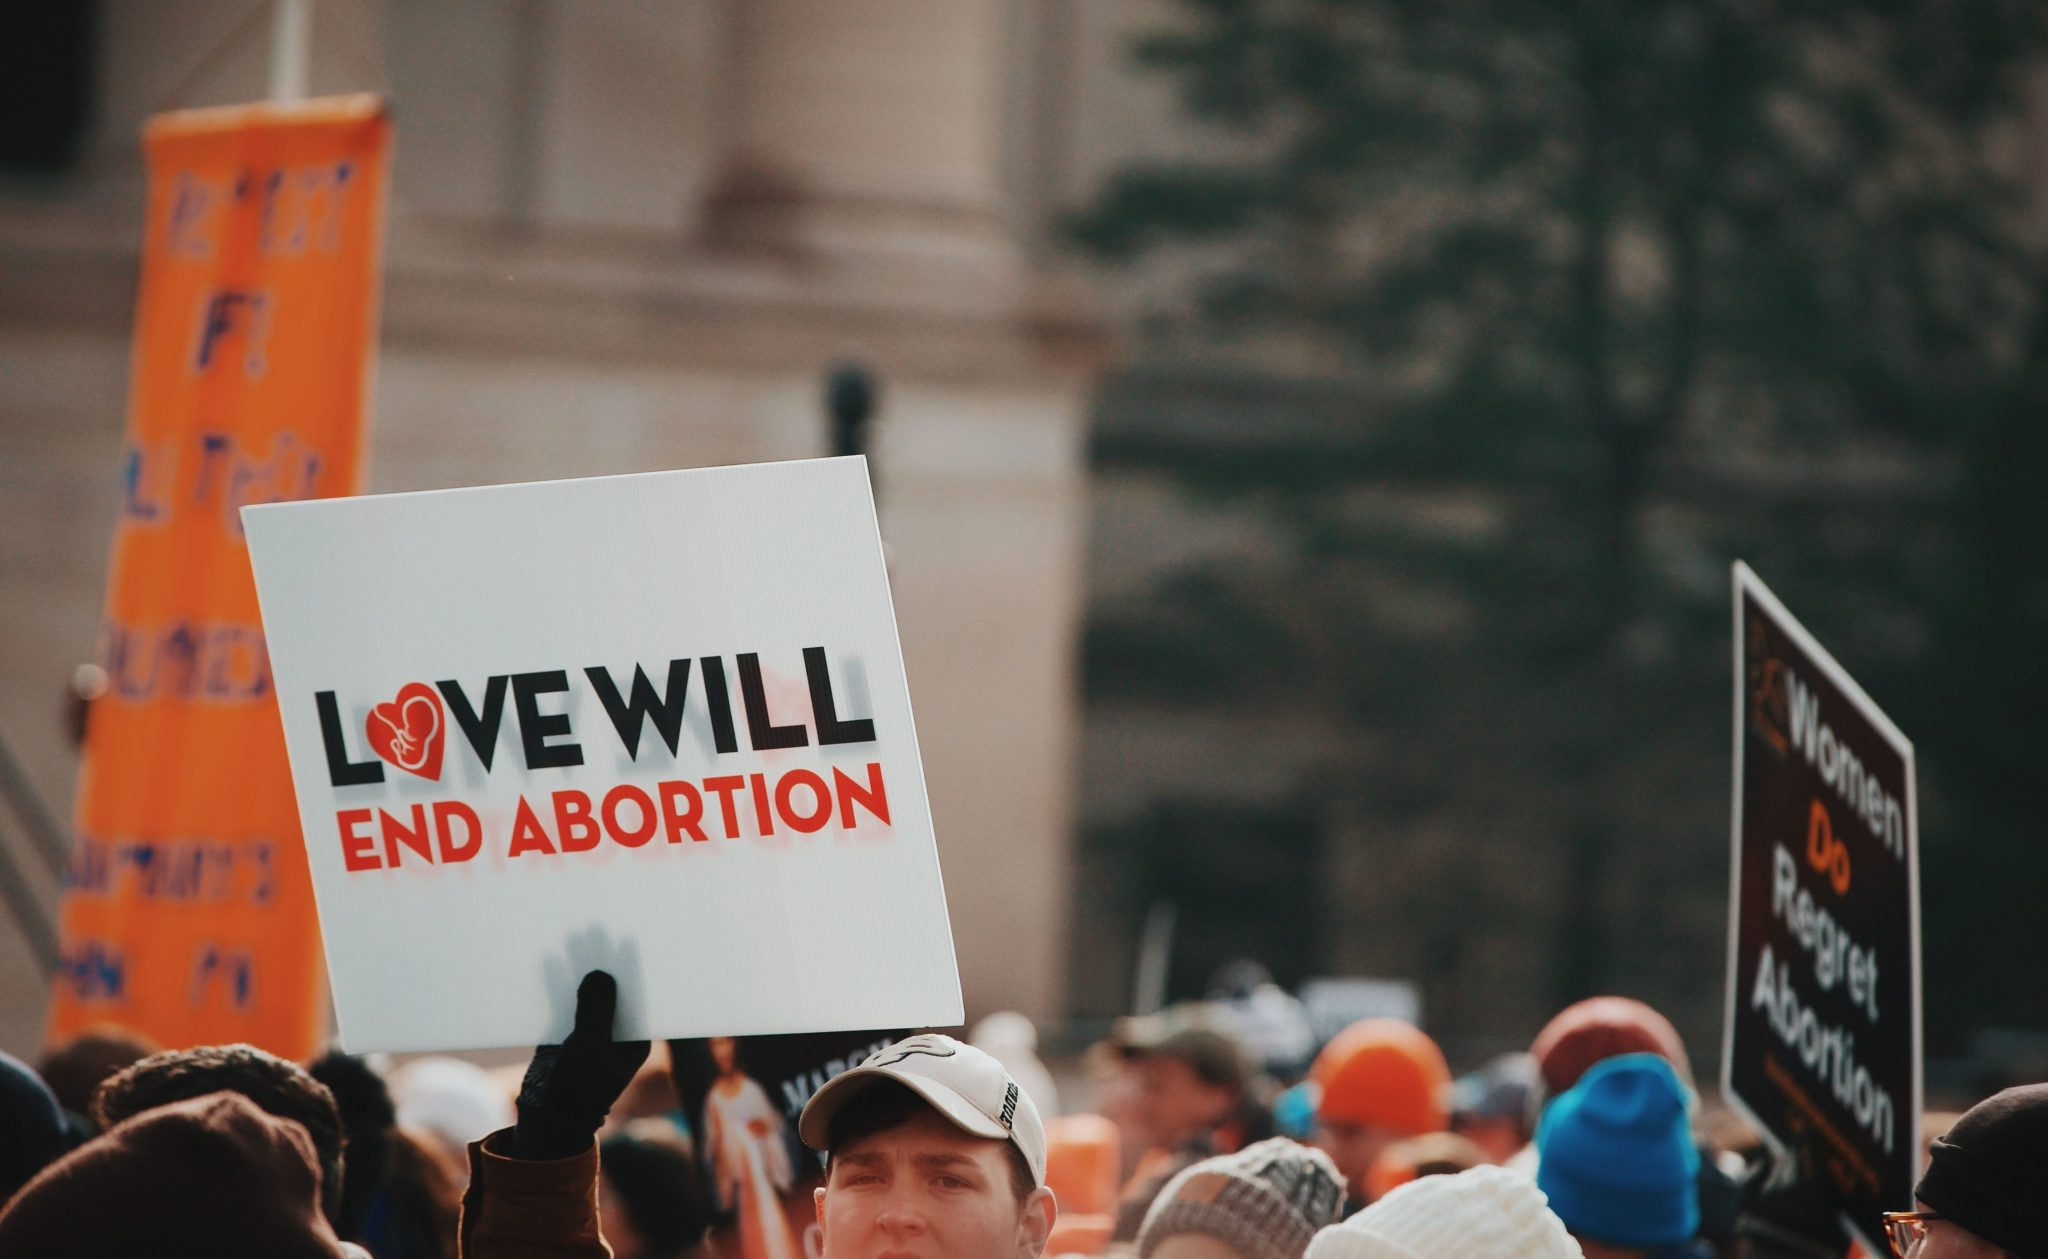 love will end abortion